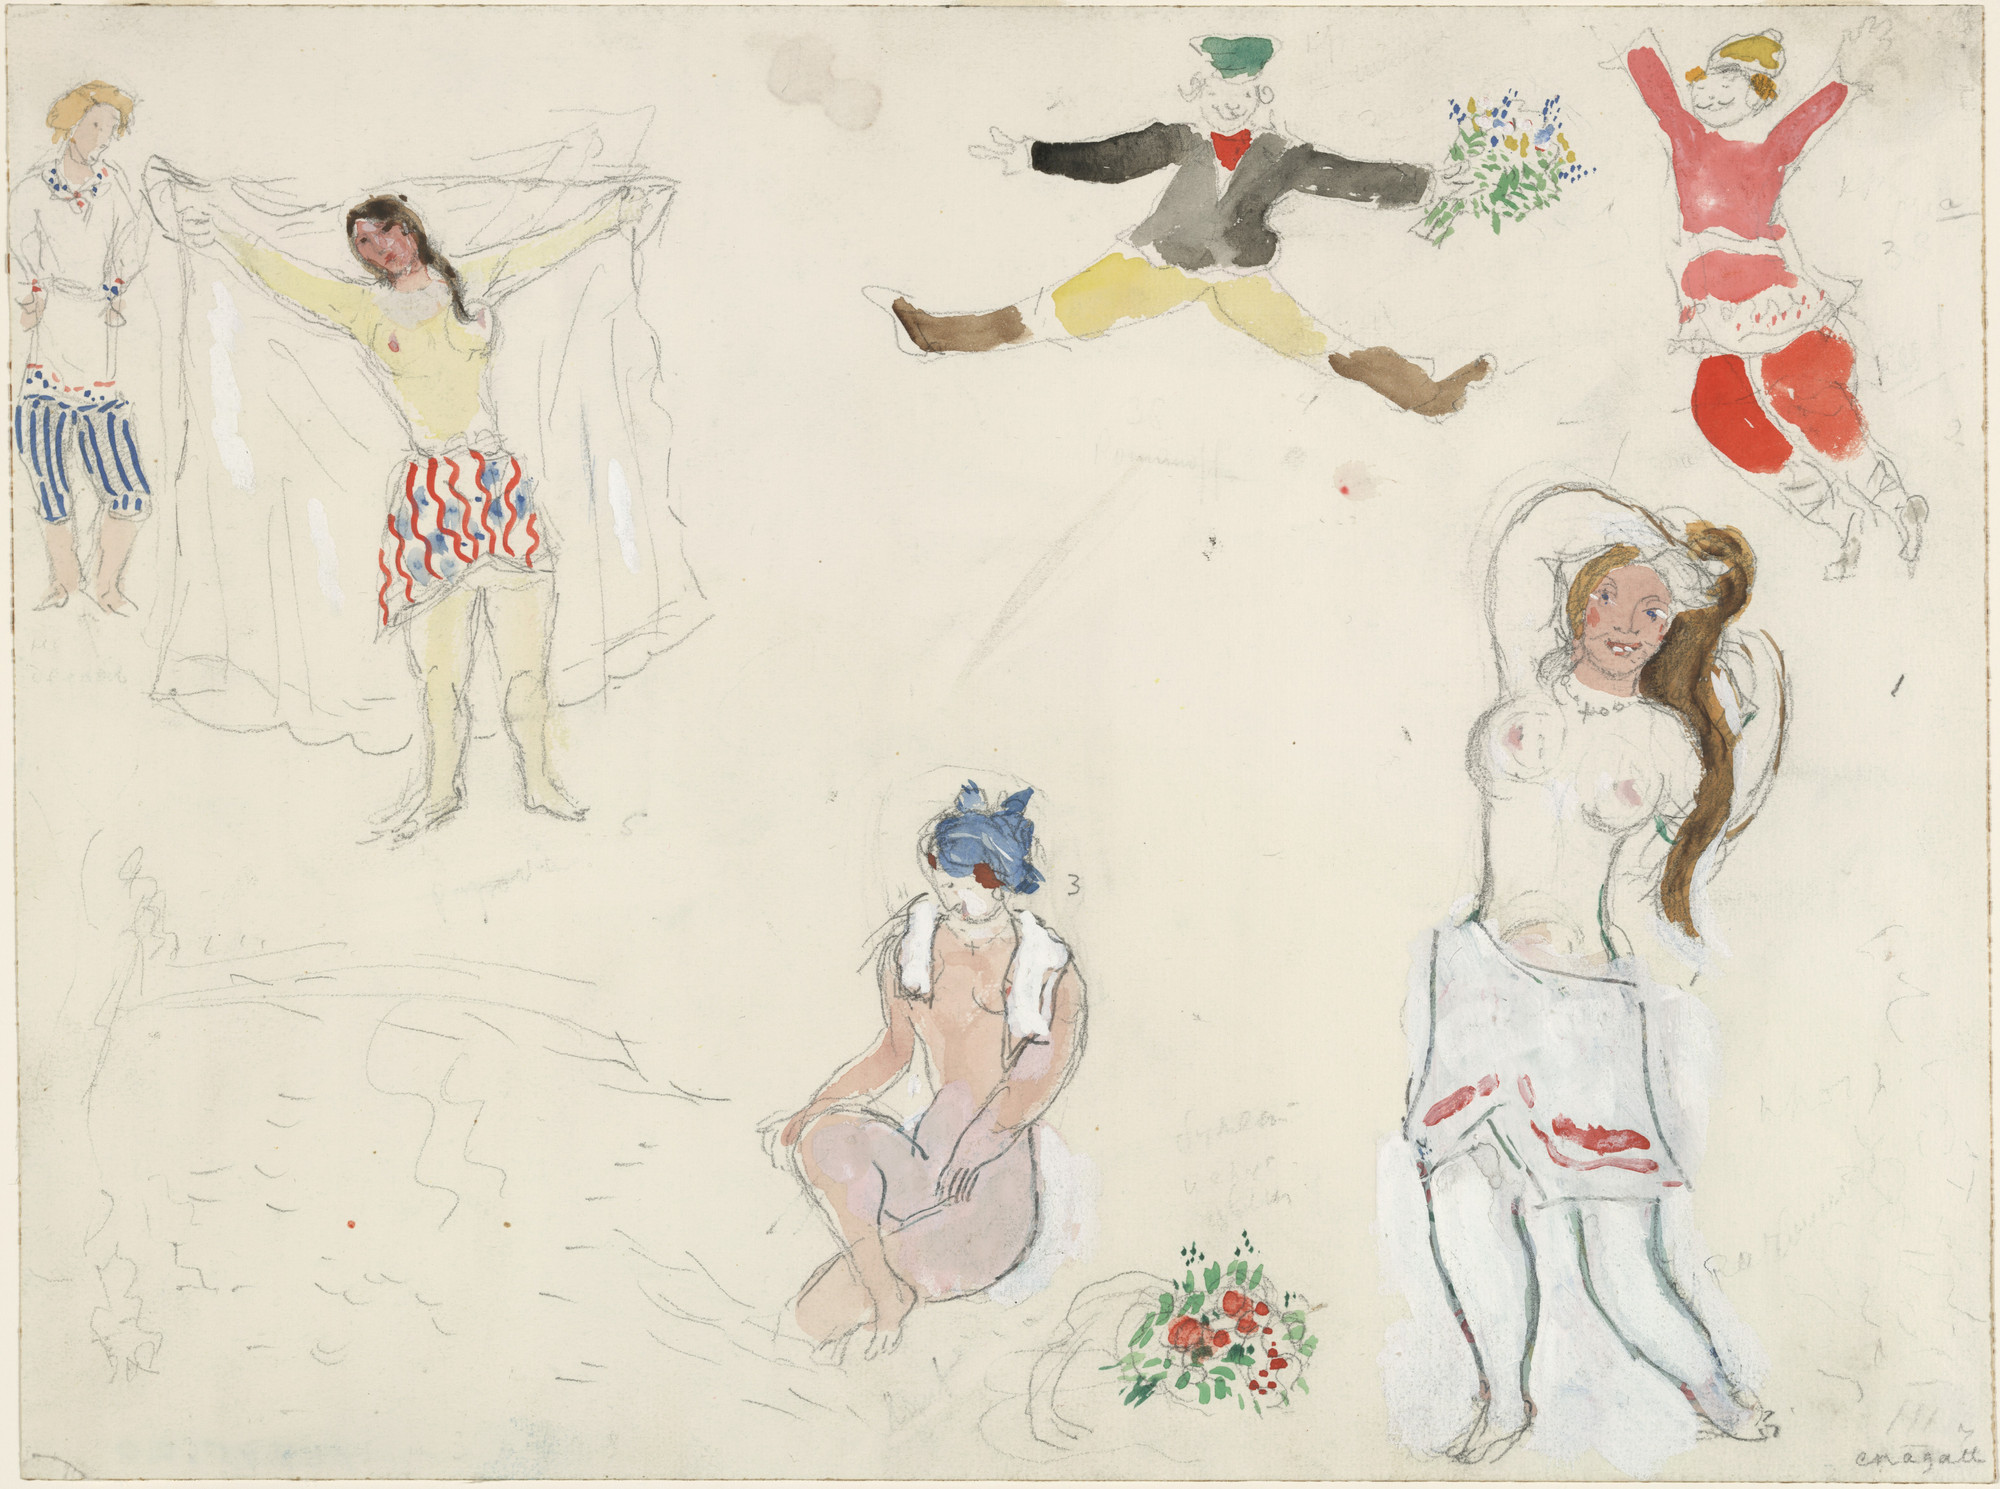 Marc Chagall. Costumes for Bathers and Peasants, costume design for Aleko. (1942)